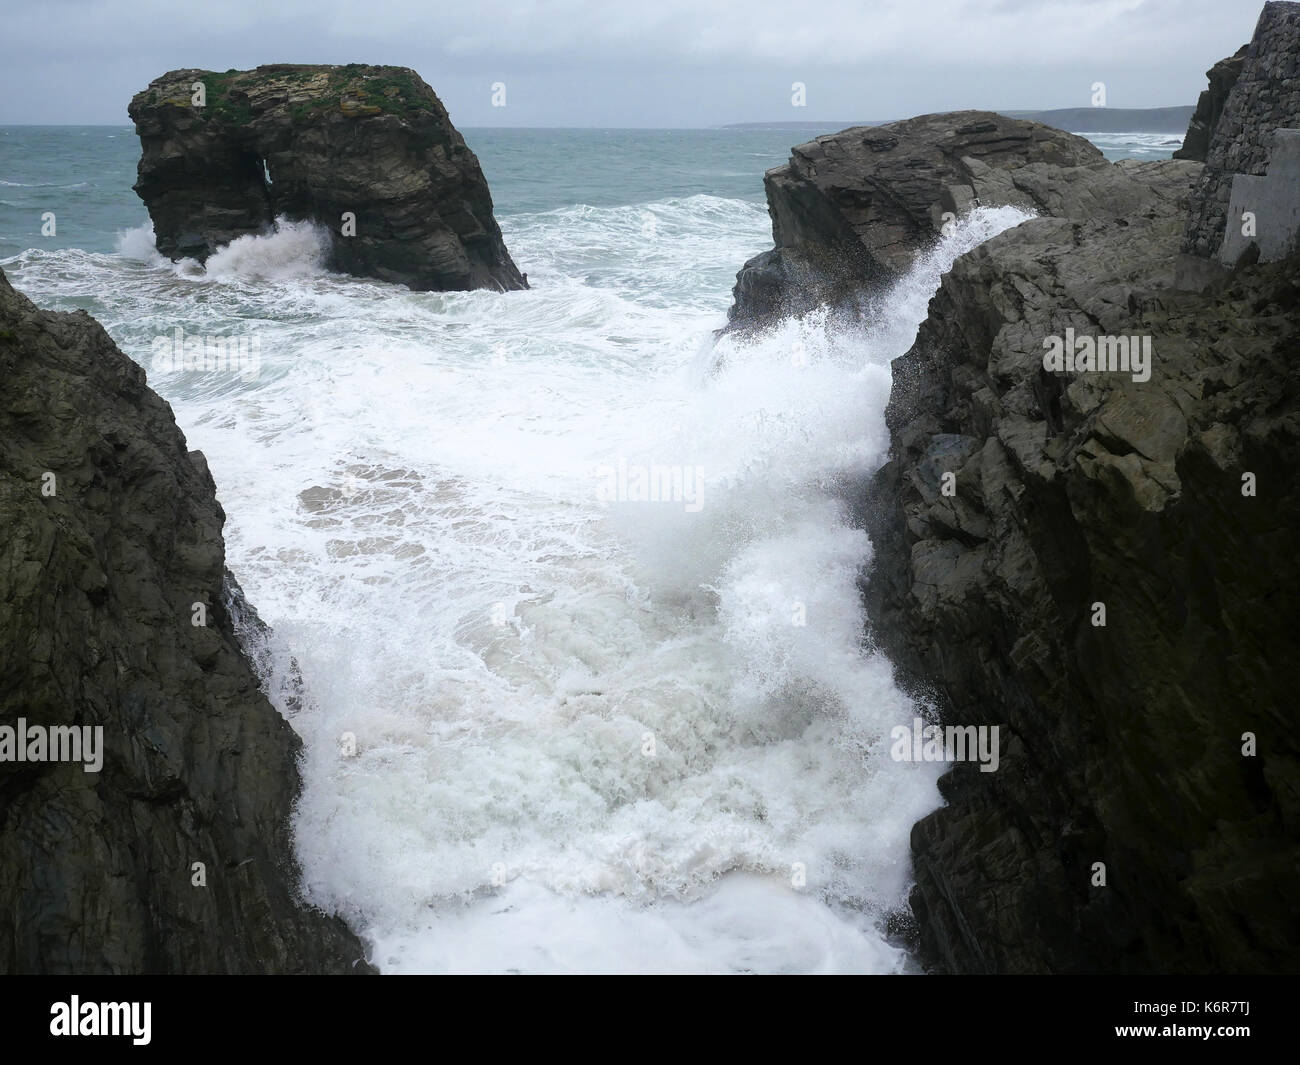 Newquay, Cornwall, UK. 13th Sep, 2017. Storm Aileen - the first named storm of the season, causes stormy seas and gale force winds in Newquay. Credit: Nicholas Burningham/Alamy Live News - Stock Image